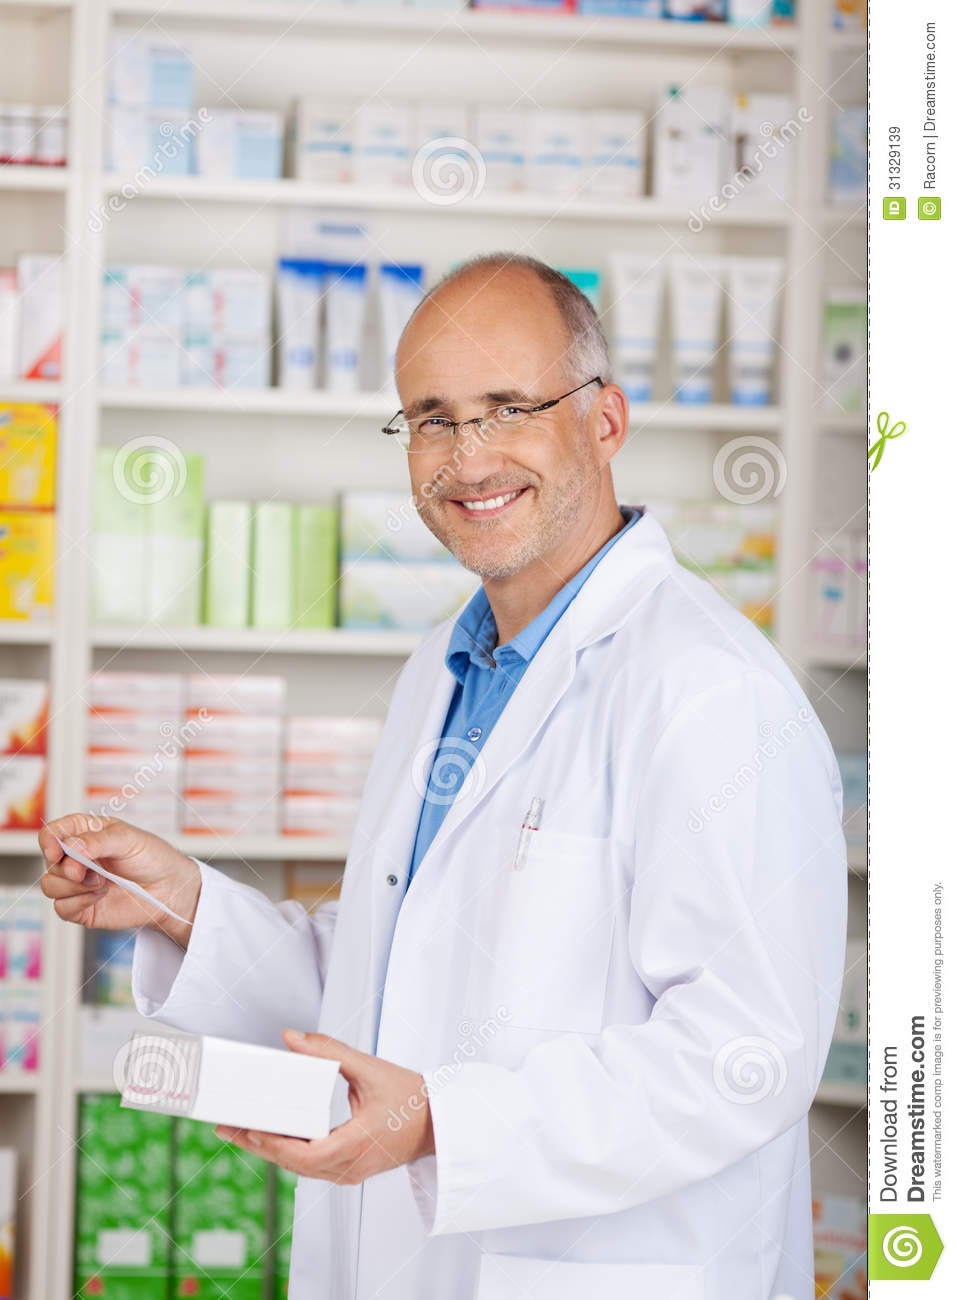 """pharmacist essay Are you stuck with a """"why i want to be a pharmacist"""" essay here are 4 brilliant reasons to mention in your paper and wow your professor."""